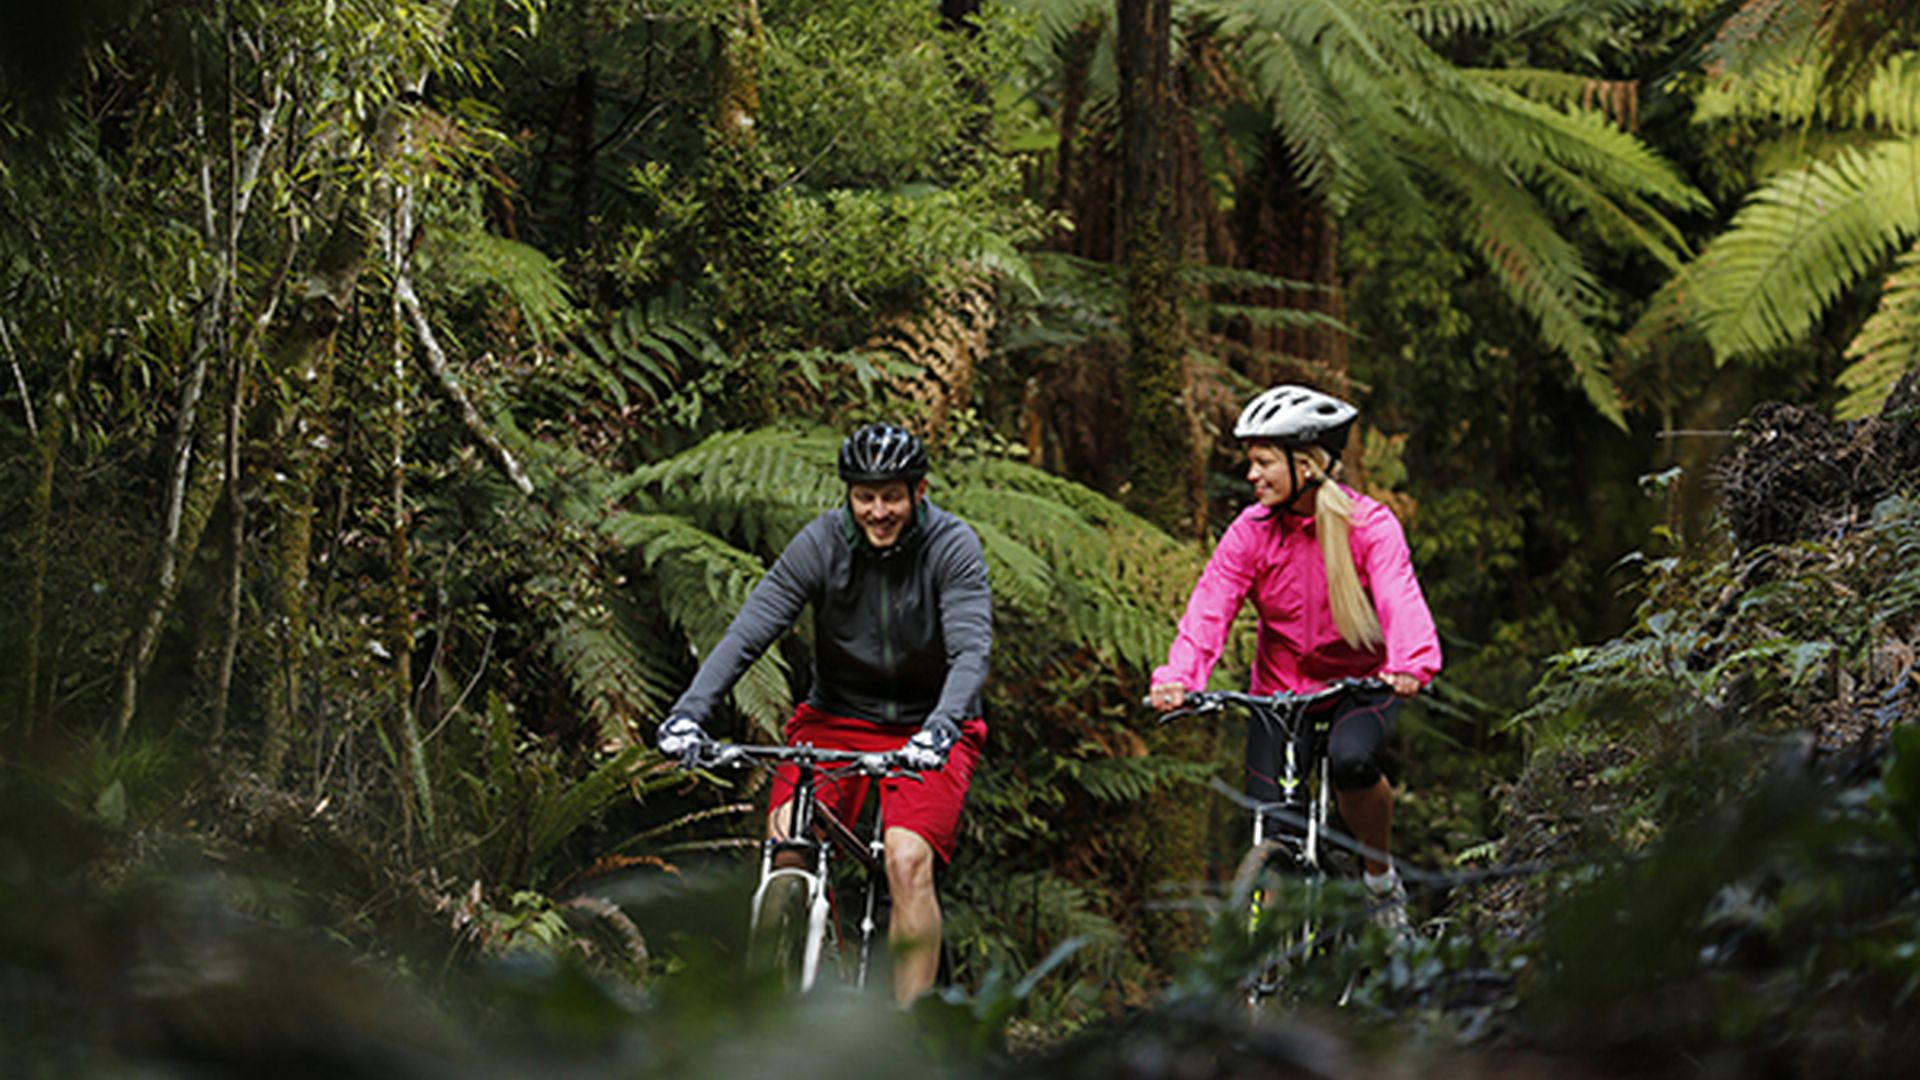 Tui Lodge luxury homestay is the perfect base for mountain biking